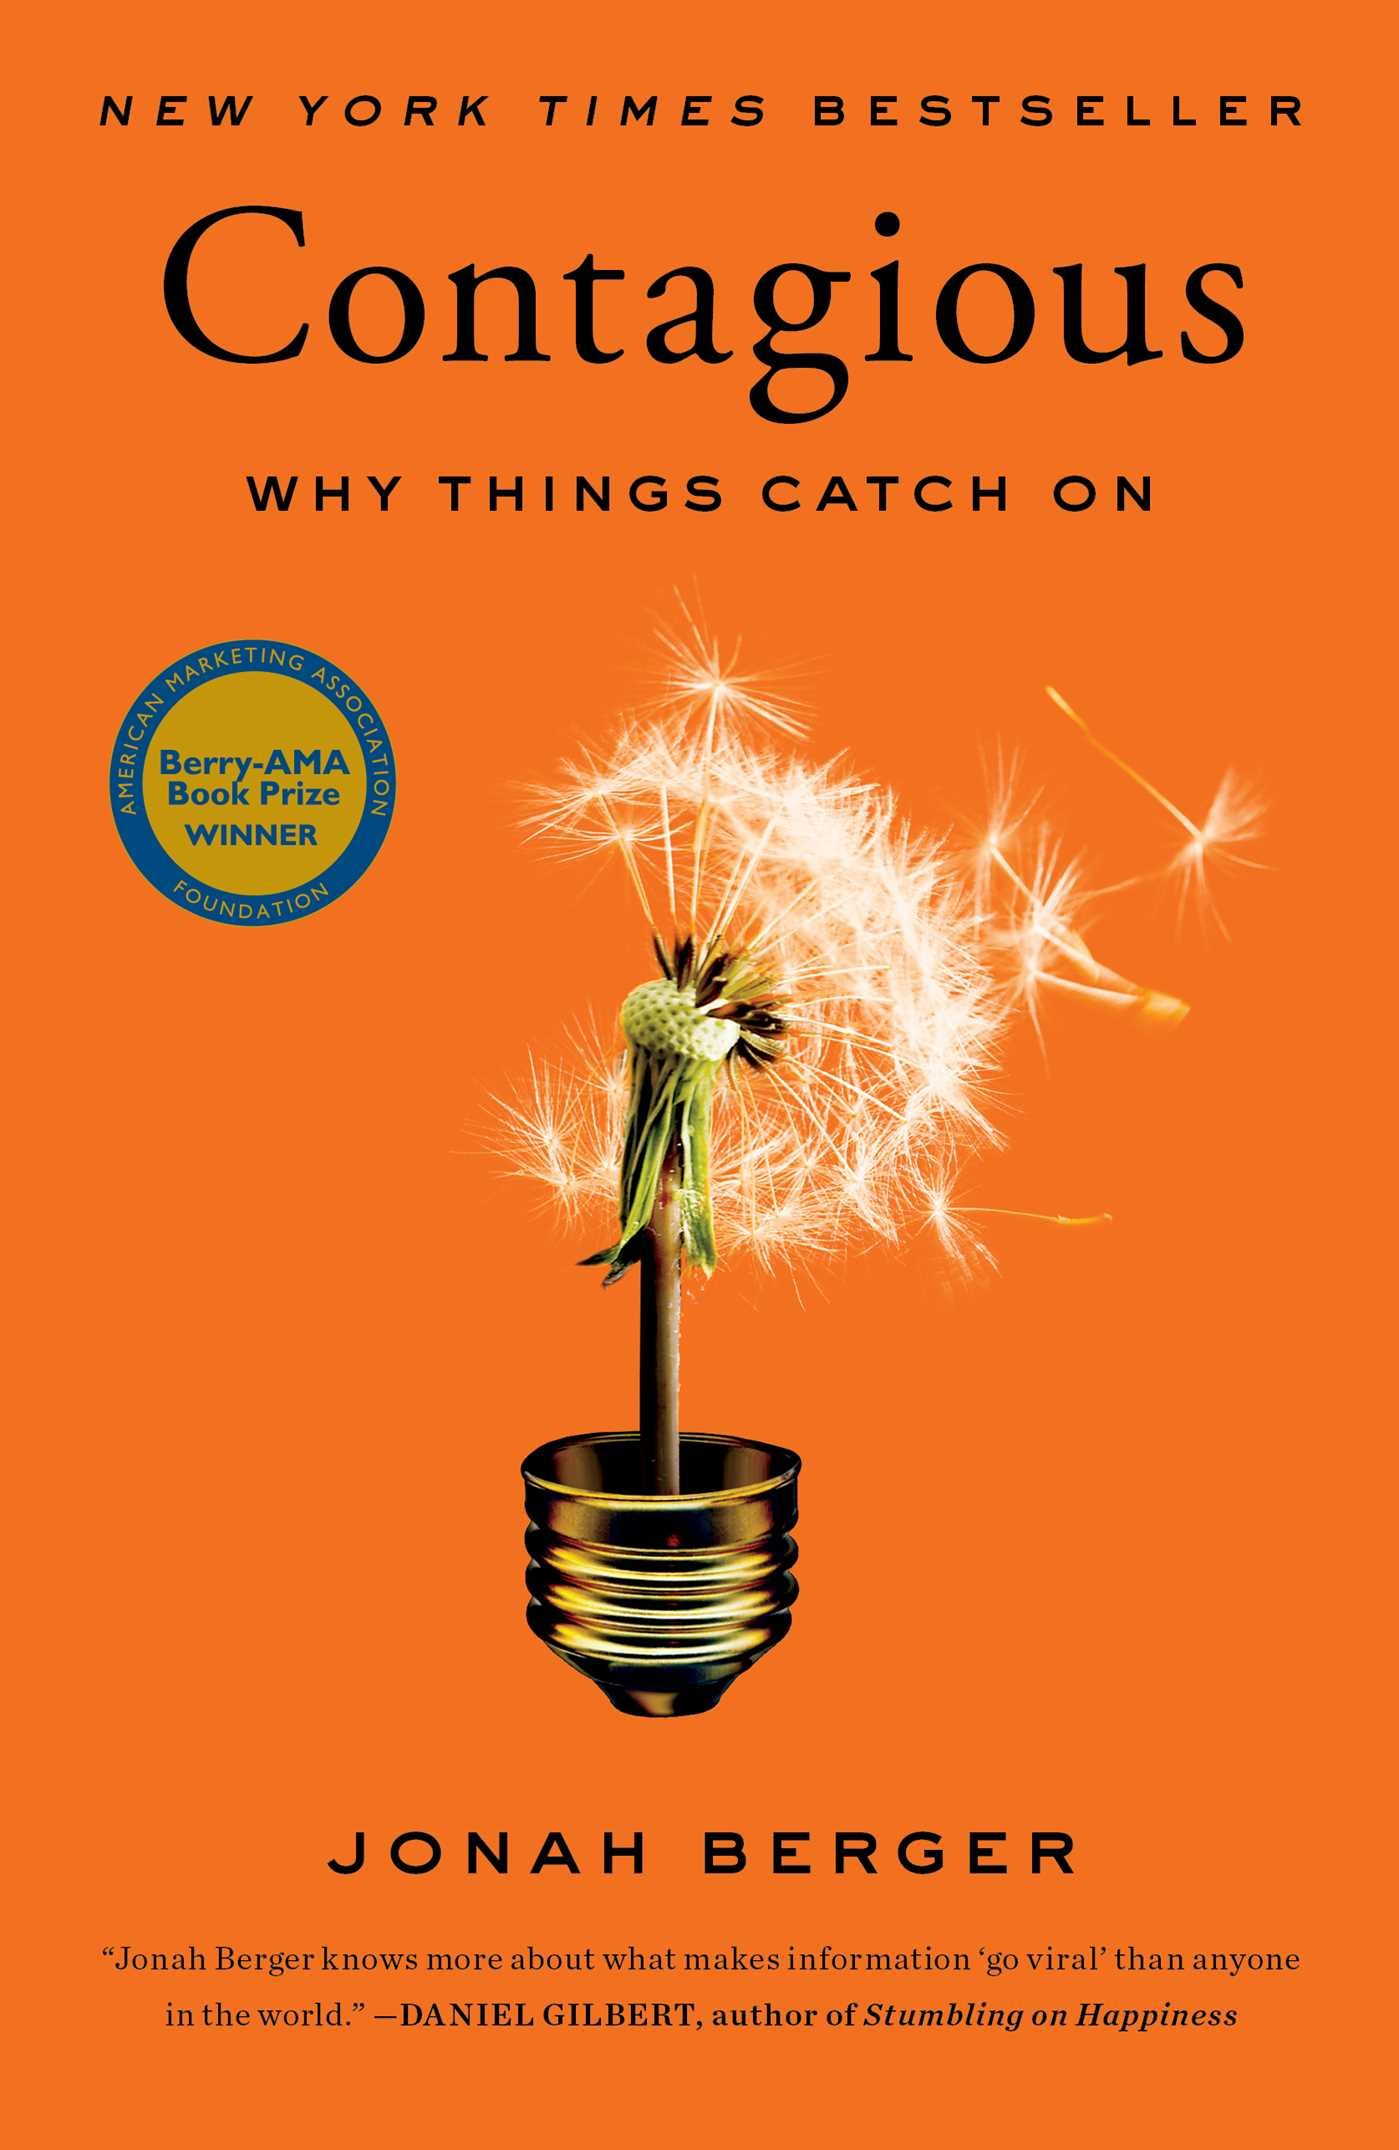 c0afbf784 Contagious  Why Things Catch on - Livros na Amazon Brasil- 9781451686579